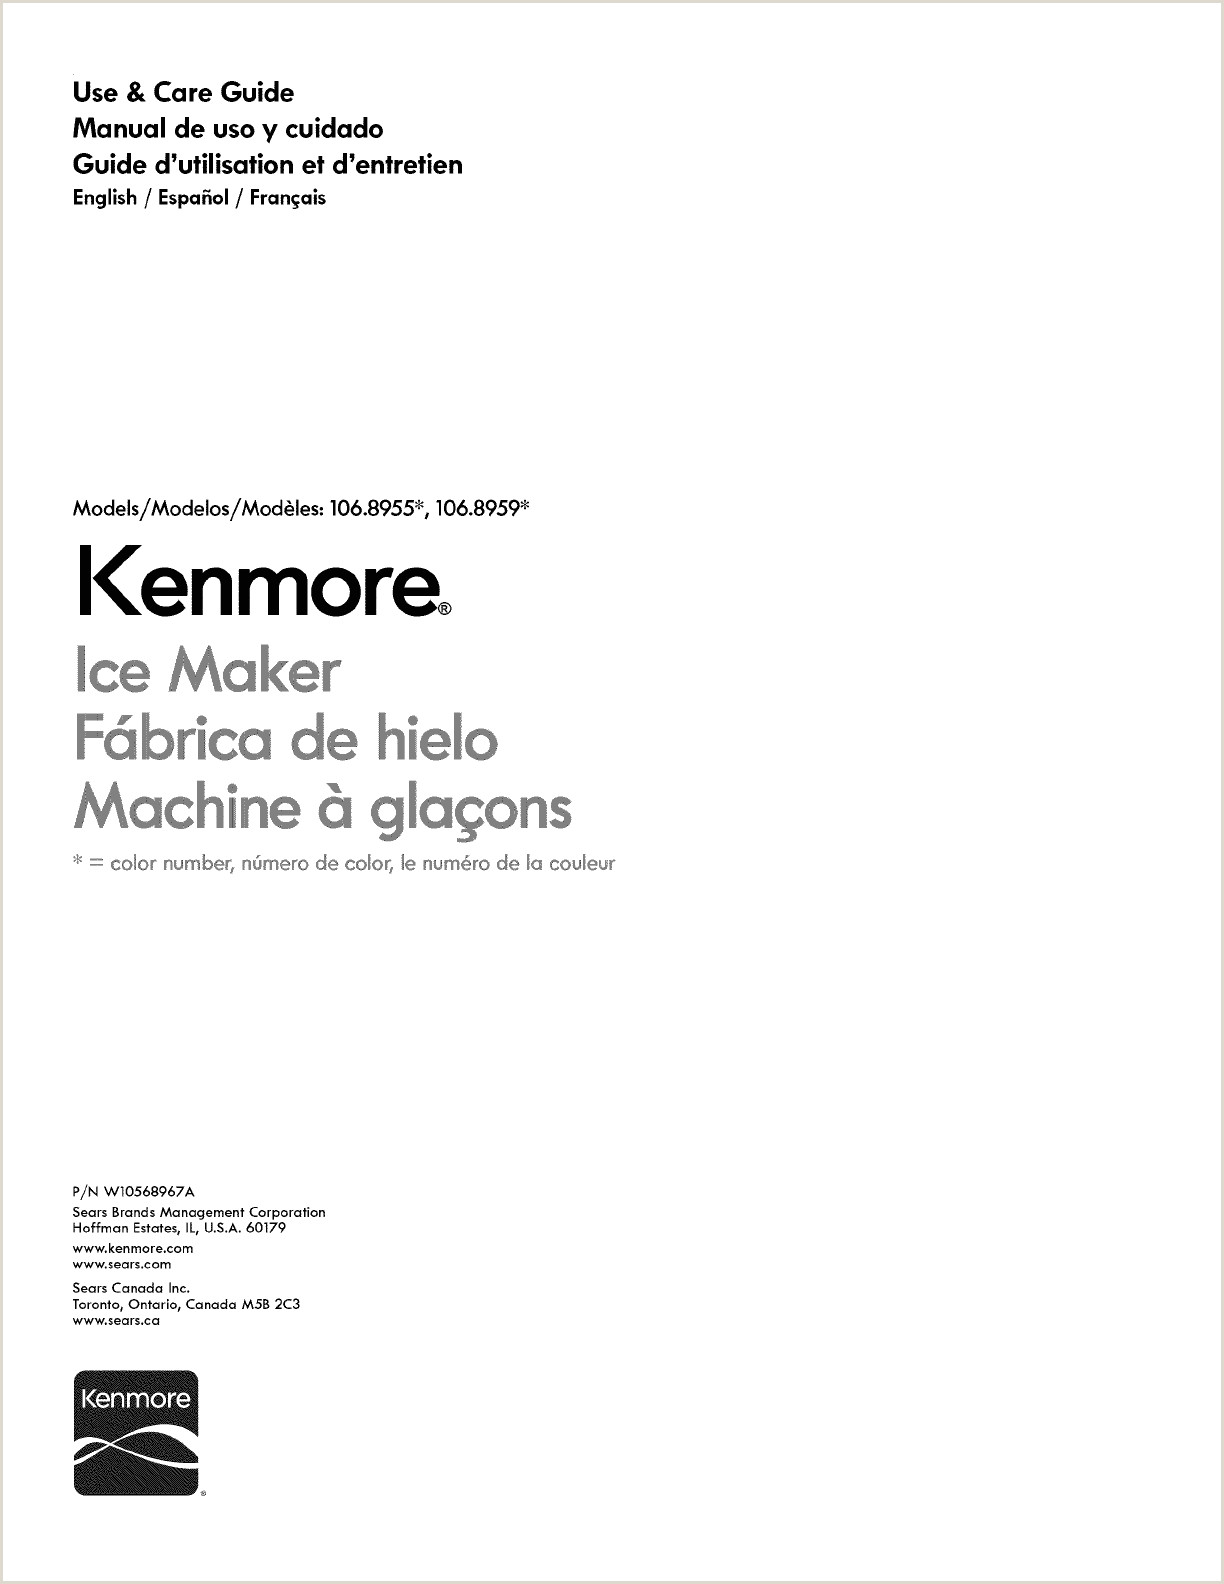 Kenmore User Manual ICE CUBE MAKER Manuals And